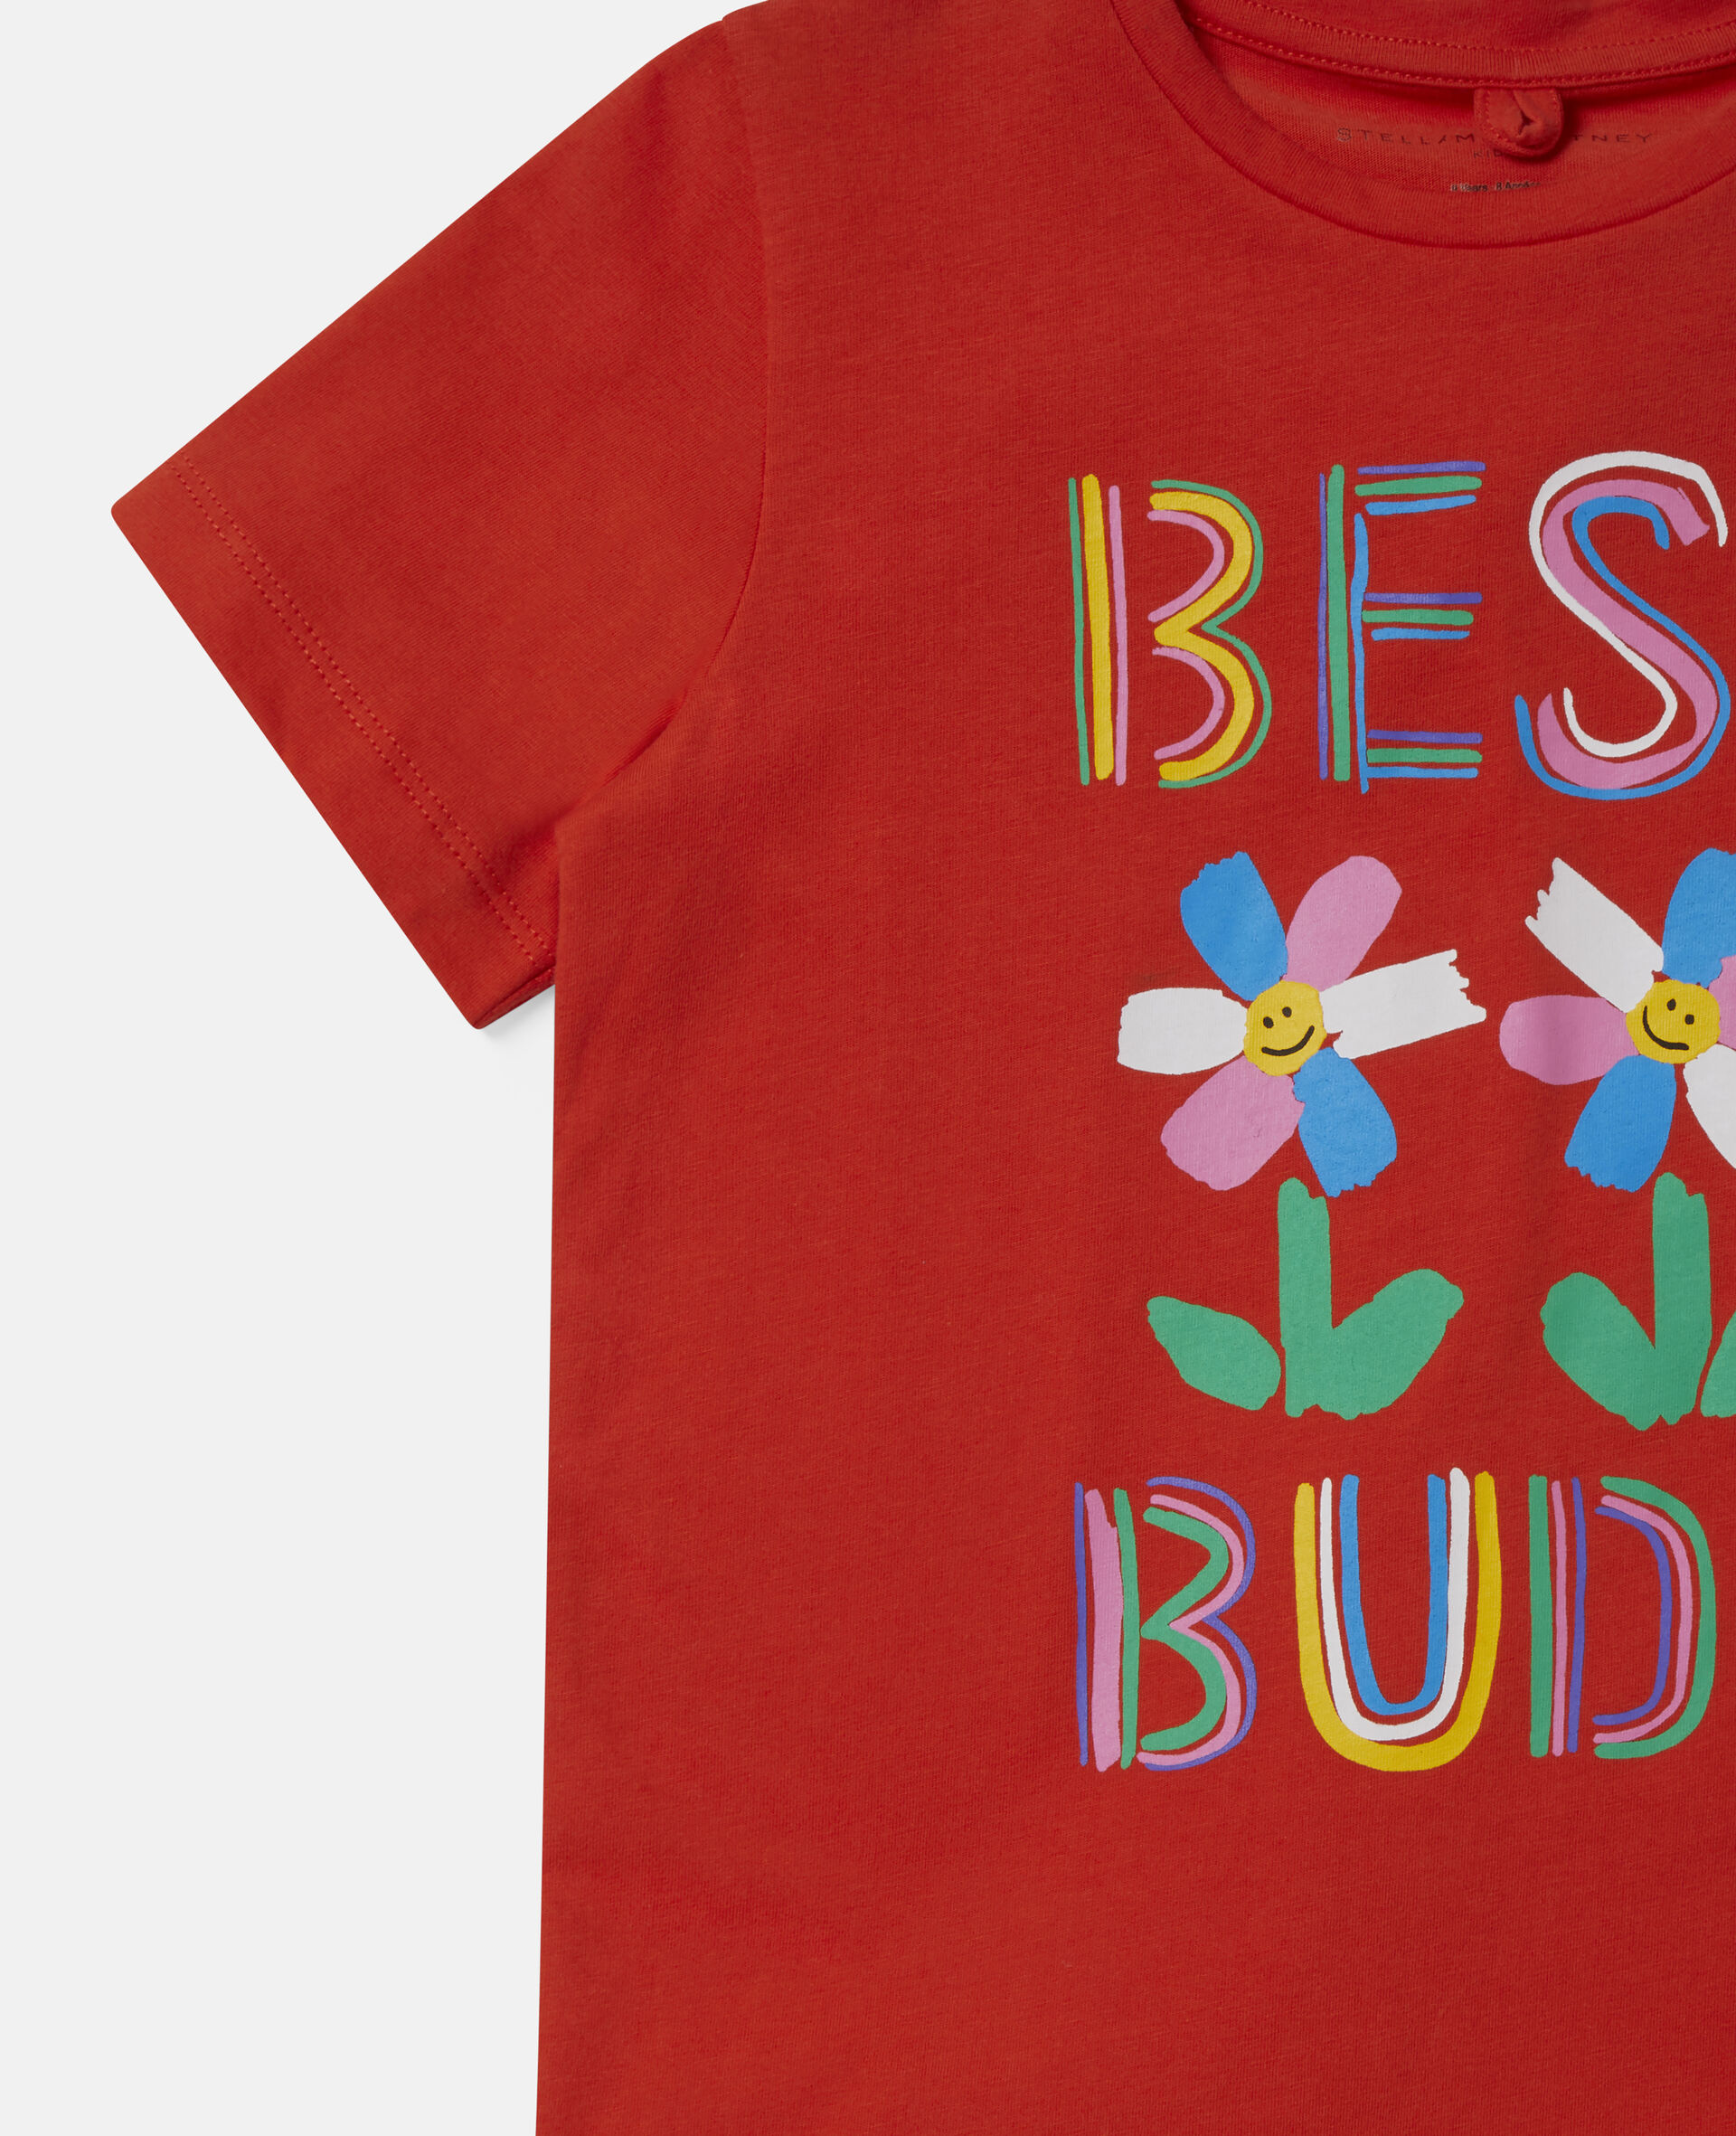 Best Buds Cotton T-shirt-Red-large image number 2